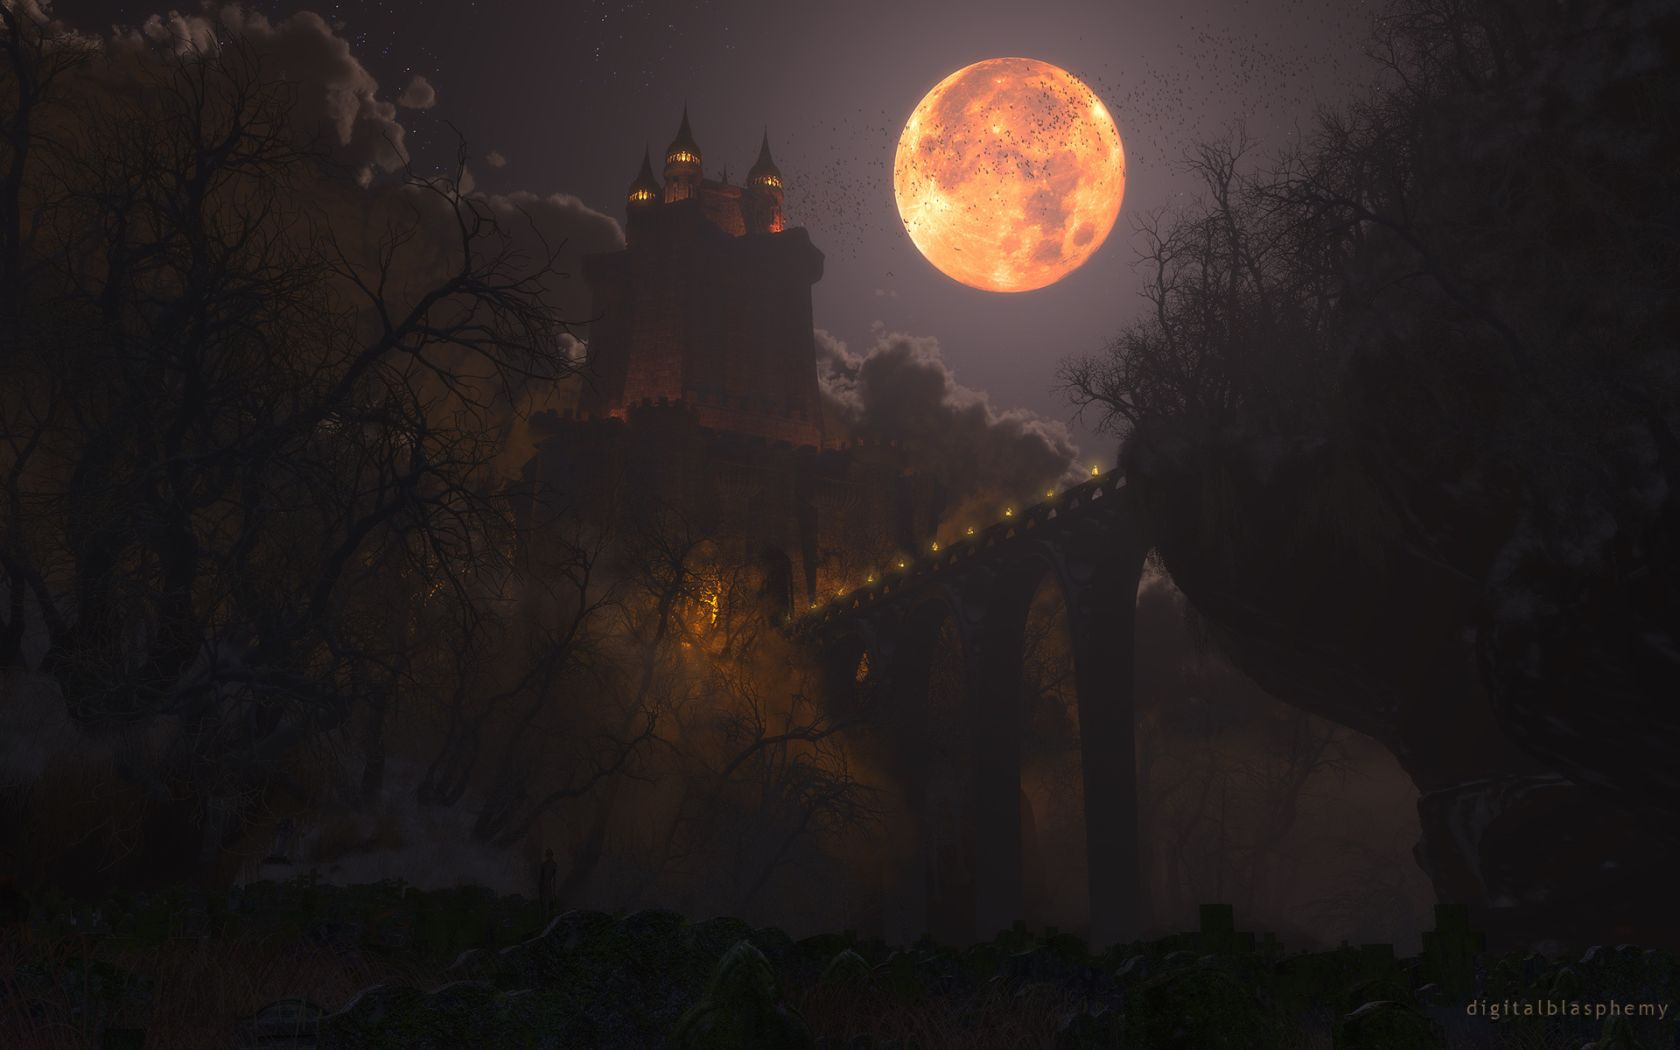 Castle Dracula 1920 x 1200 Wallpapers Wallpapers Pictures Picc 1680x1050